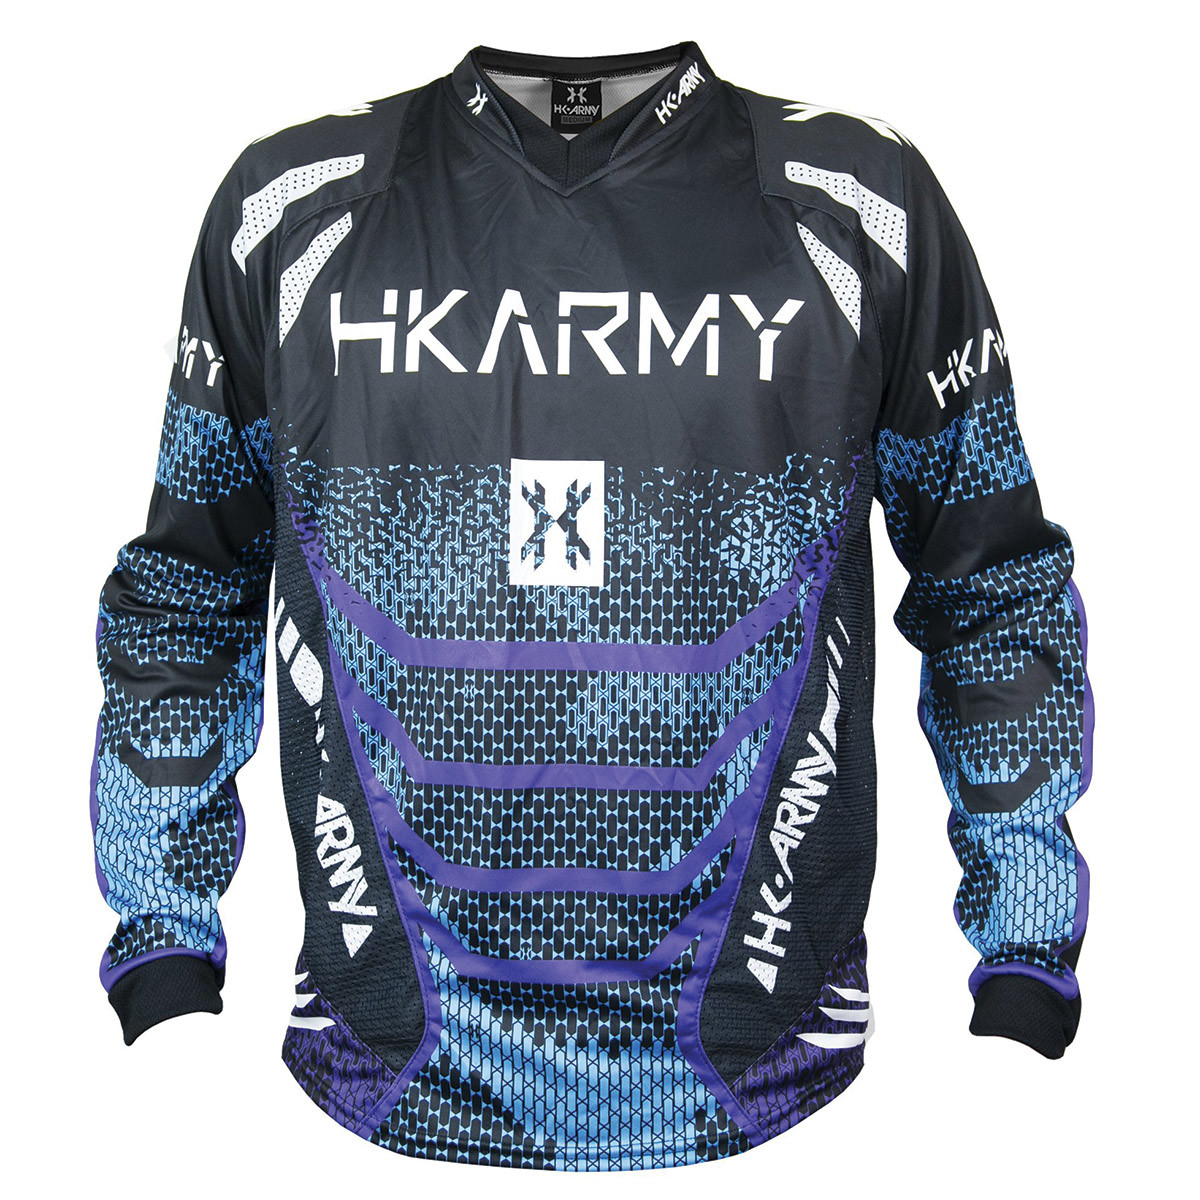 HK Army Freeline Paintball Jersey Review